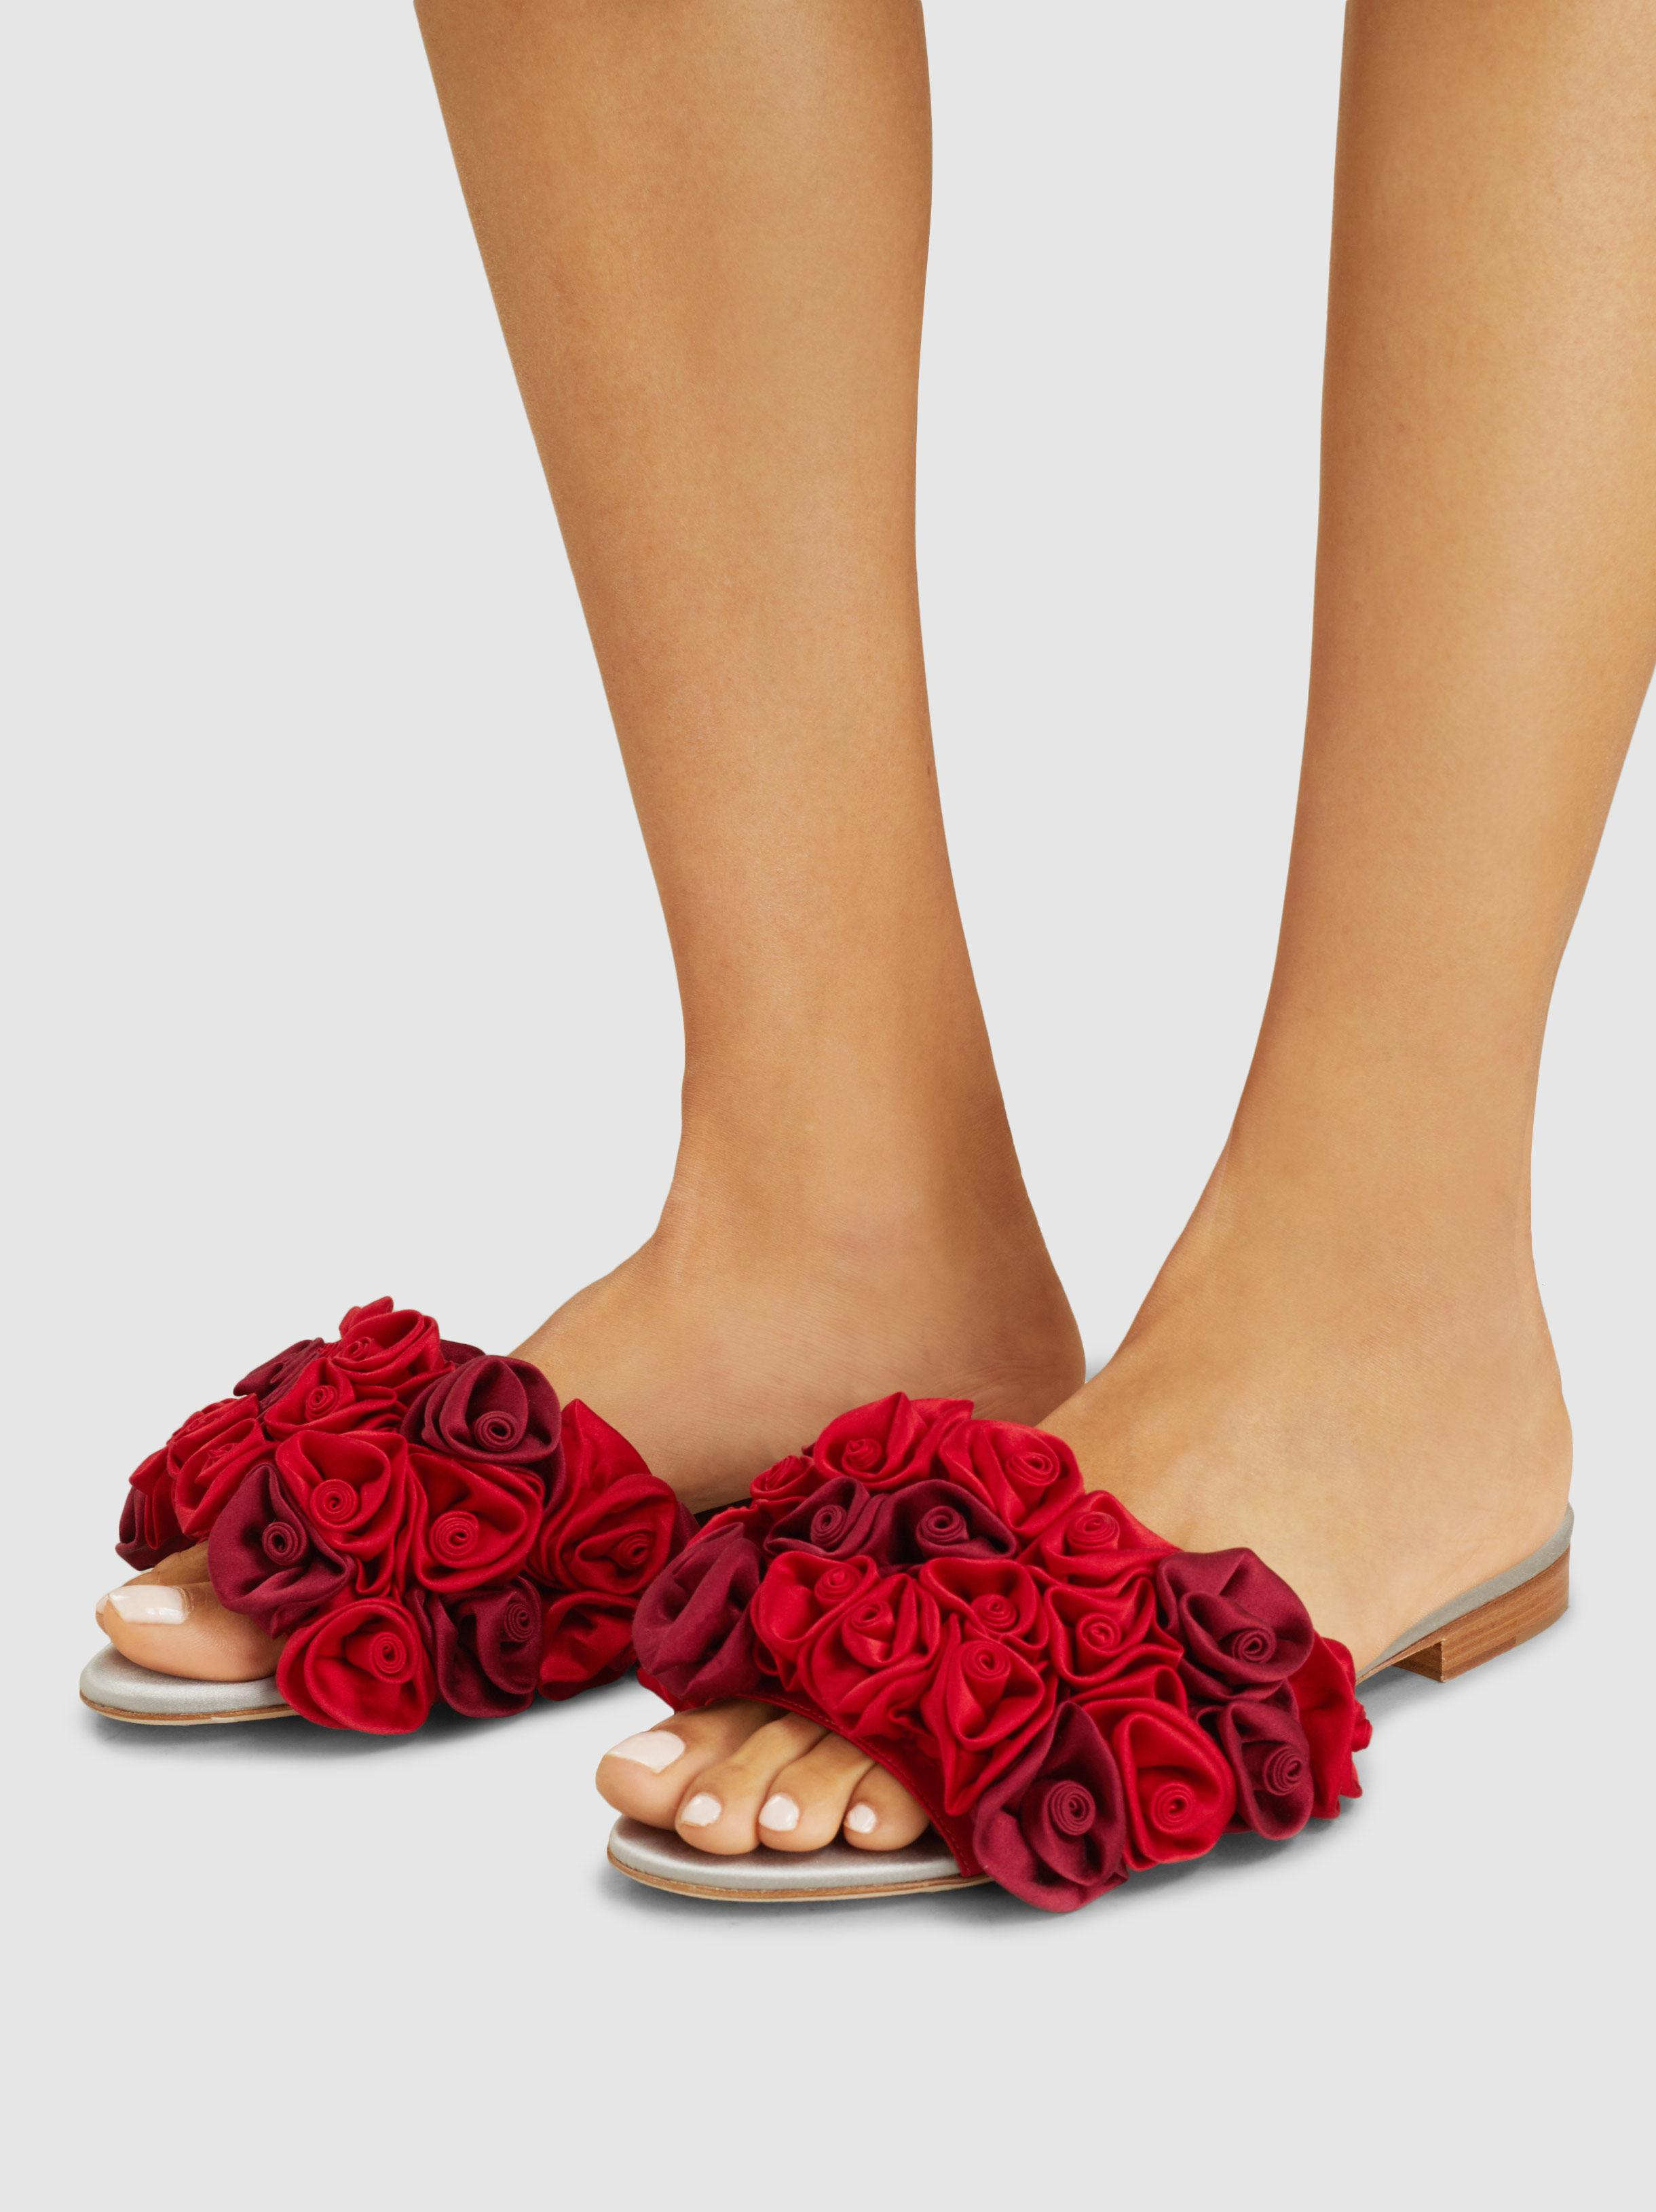 Fast Express MALONE SOULIERS Bacilio Satin Rose Sandals Extremely Cheap Online Sale Manchester Great Sale Clearance Big Discount ZuuNv